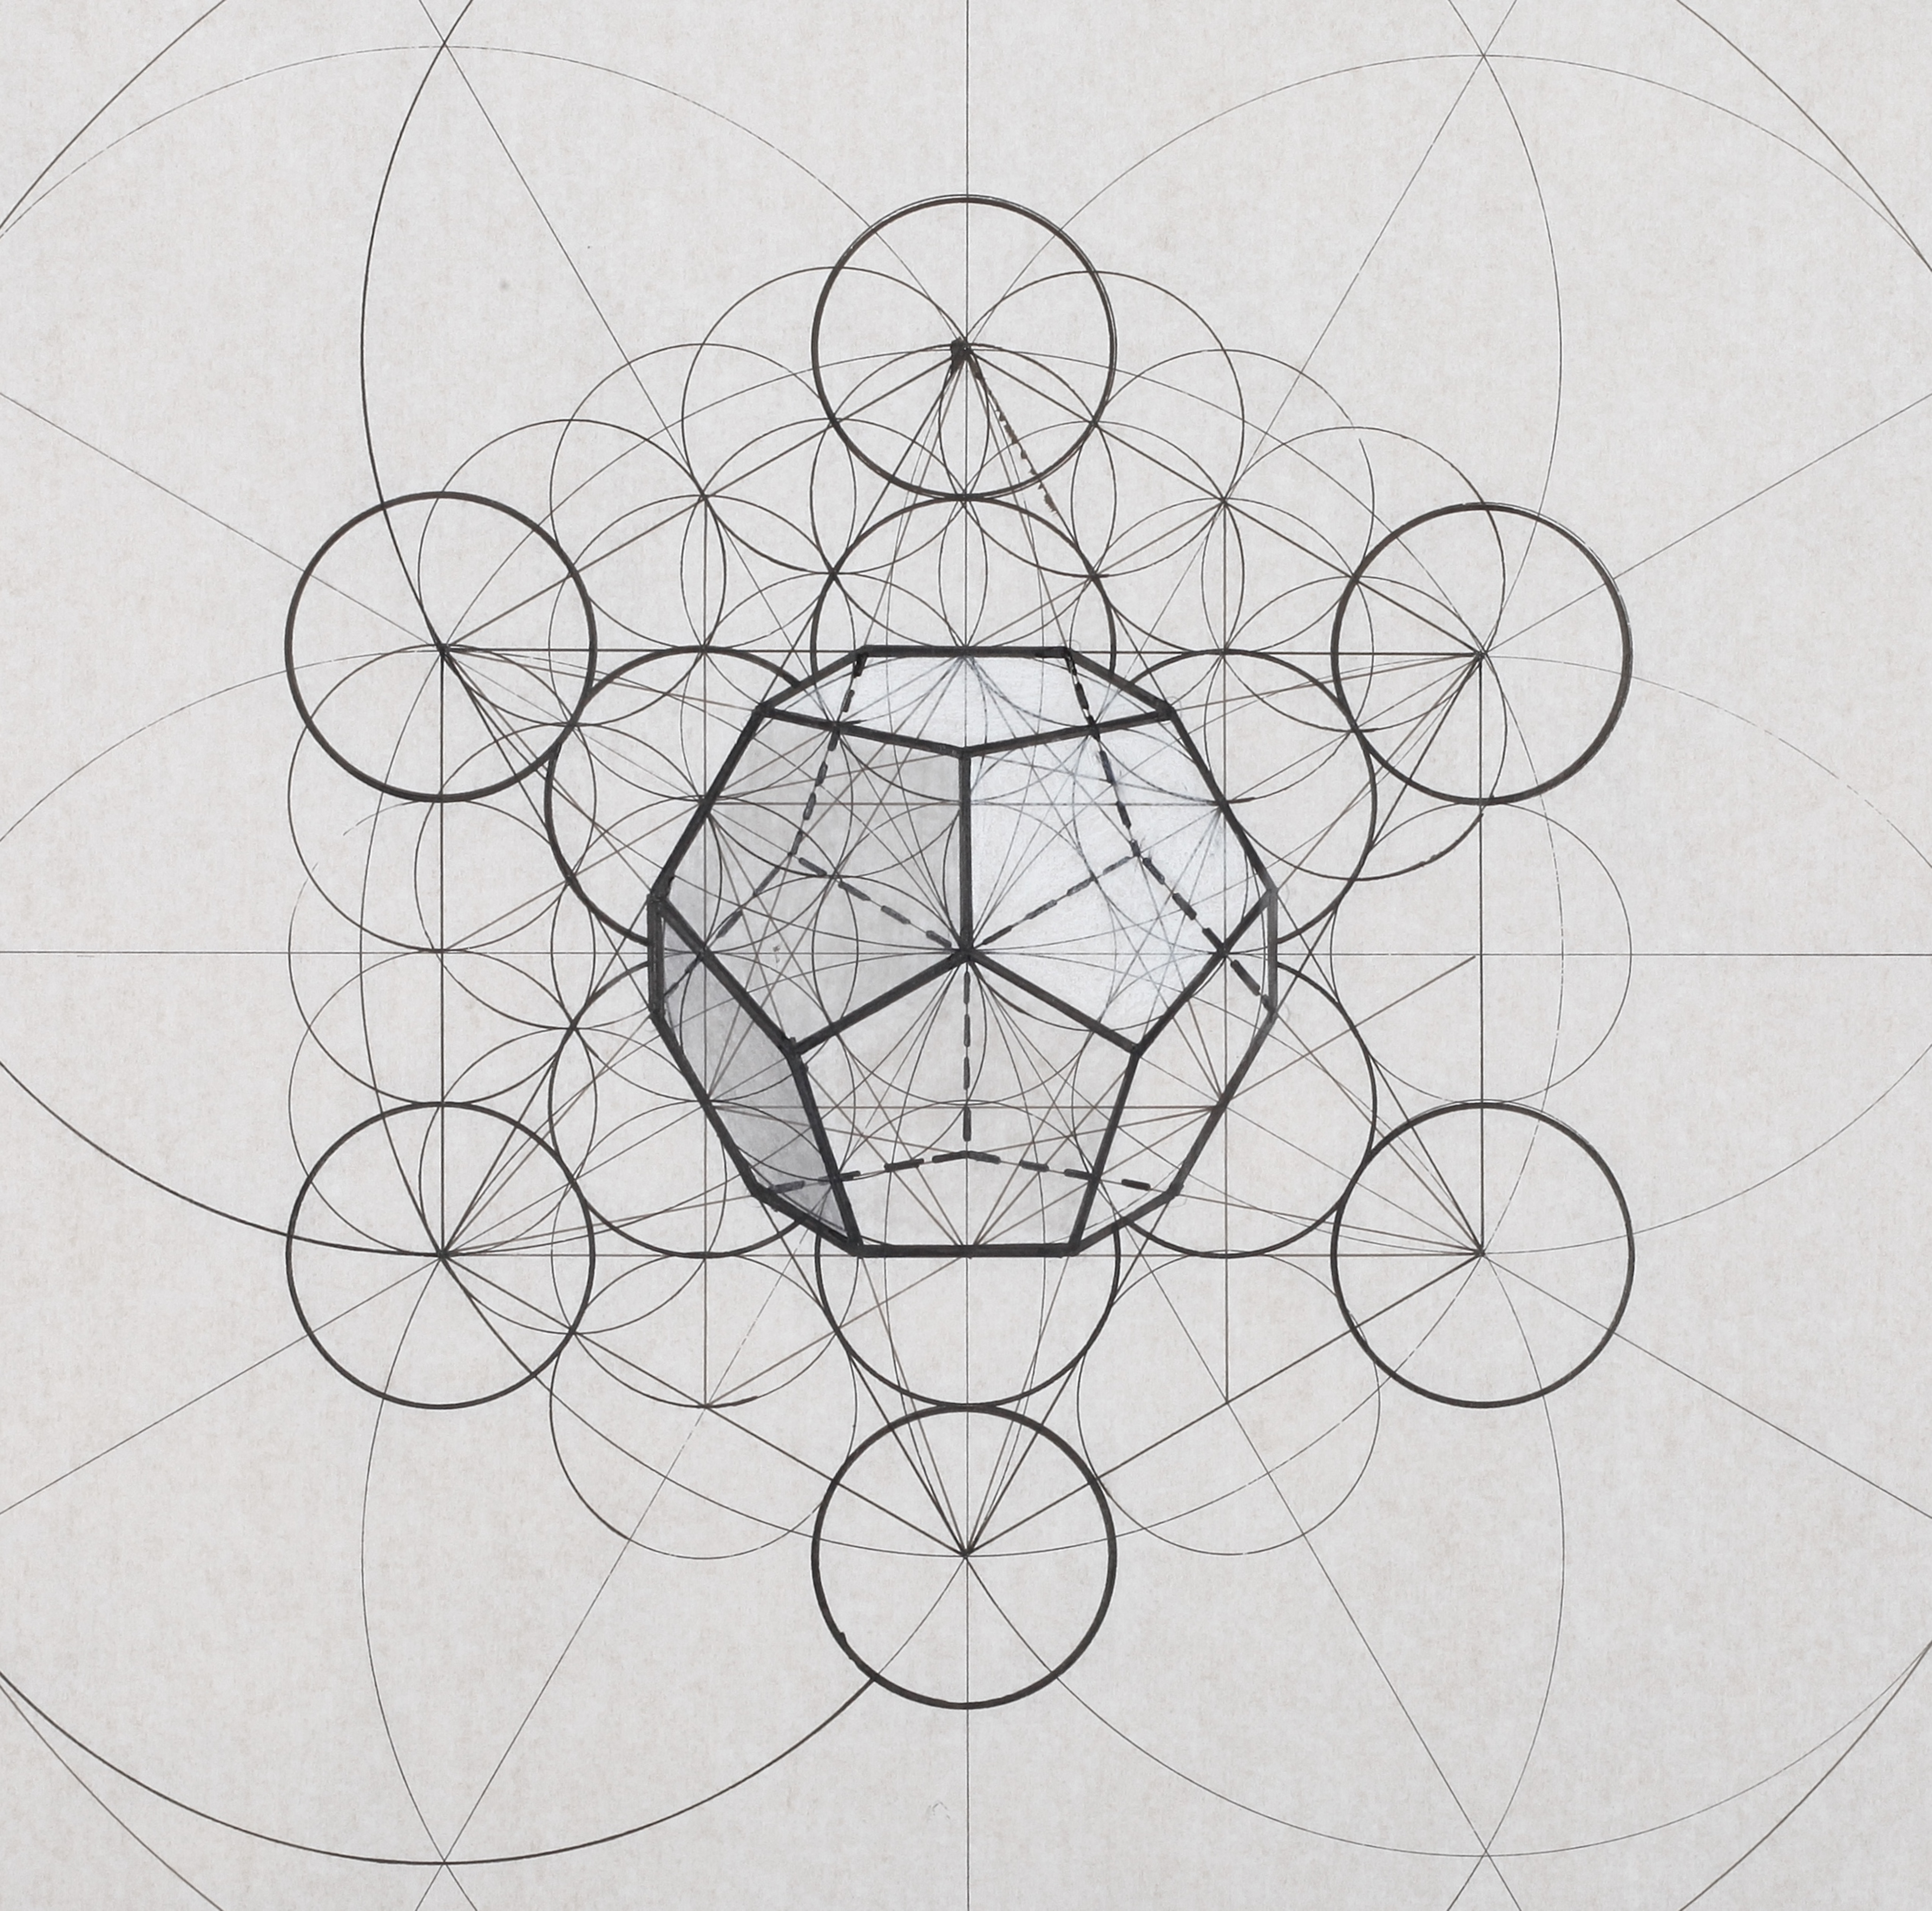 how to draw golden ratio